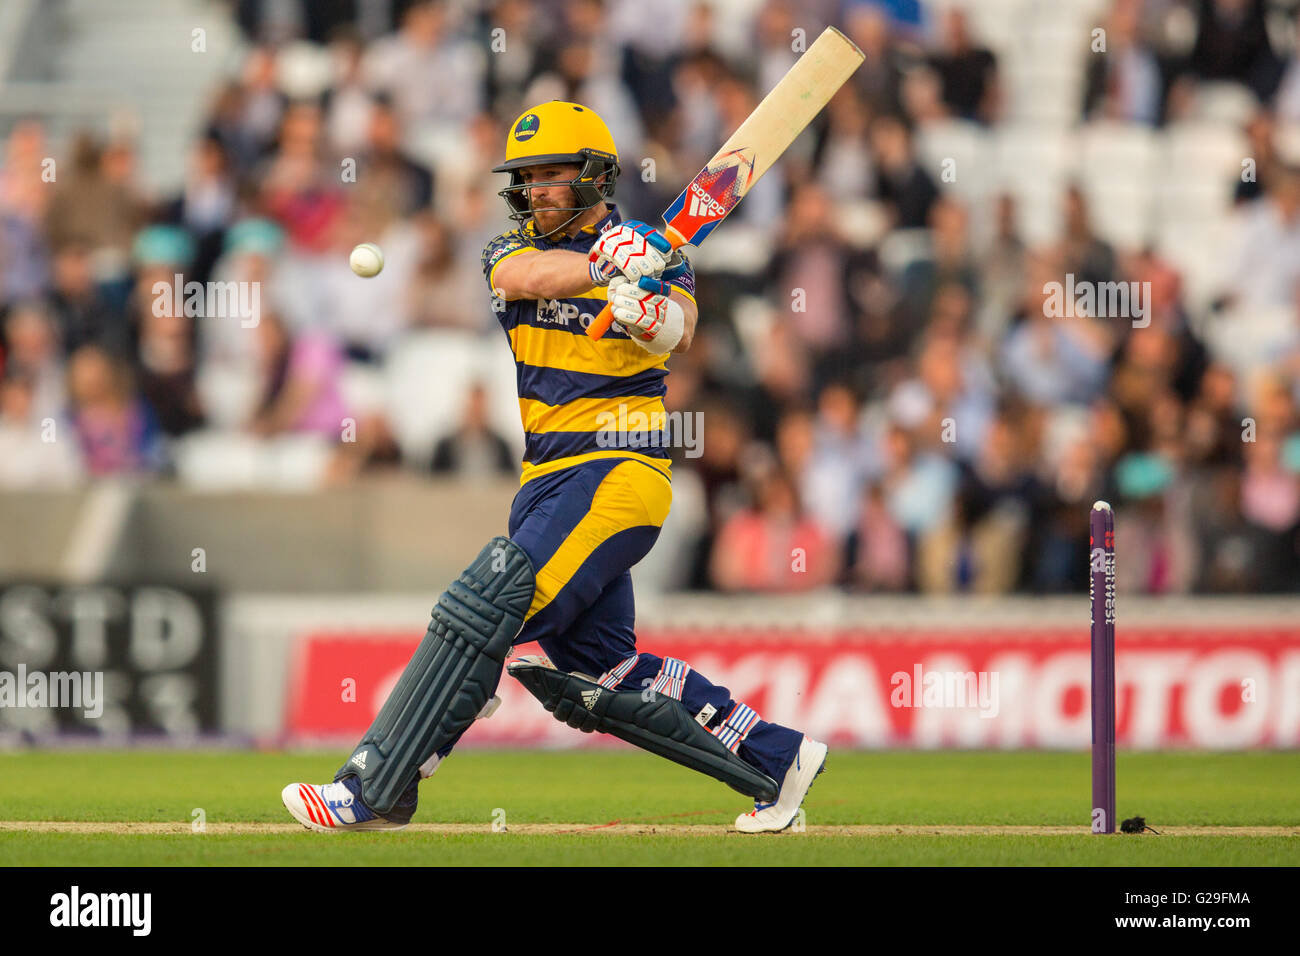 Londres, Royaume-Uni. 26 mai 2016. David Lloyd batting pour Glamorgan dans le T20 blast match de cricket de l'anneau. Photo Stock